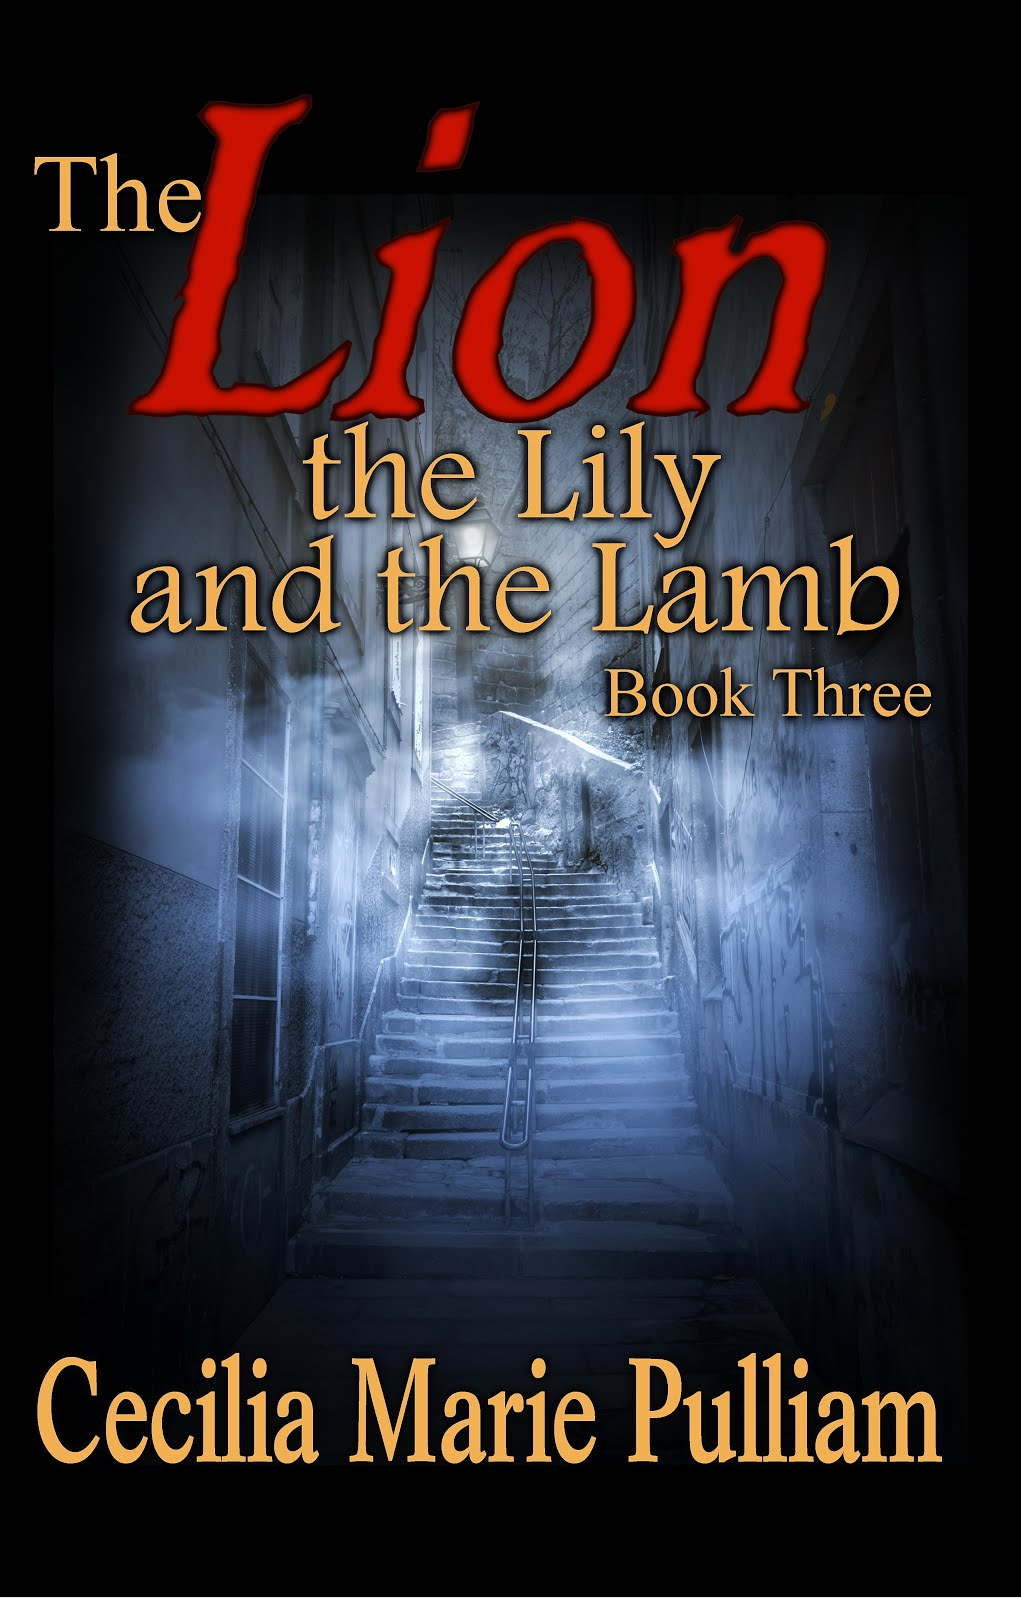 Lions and Lamb Series: Book 3